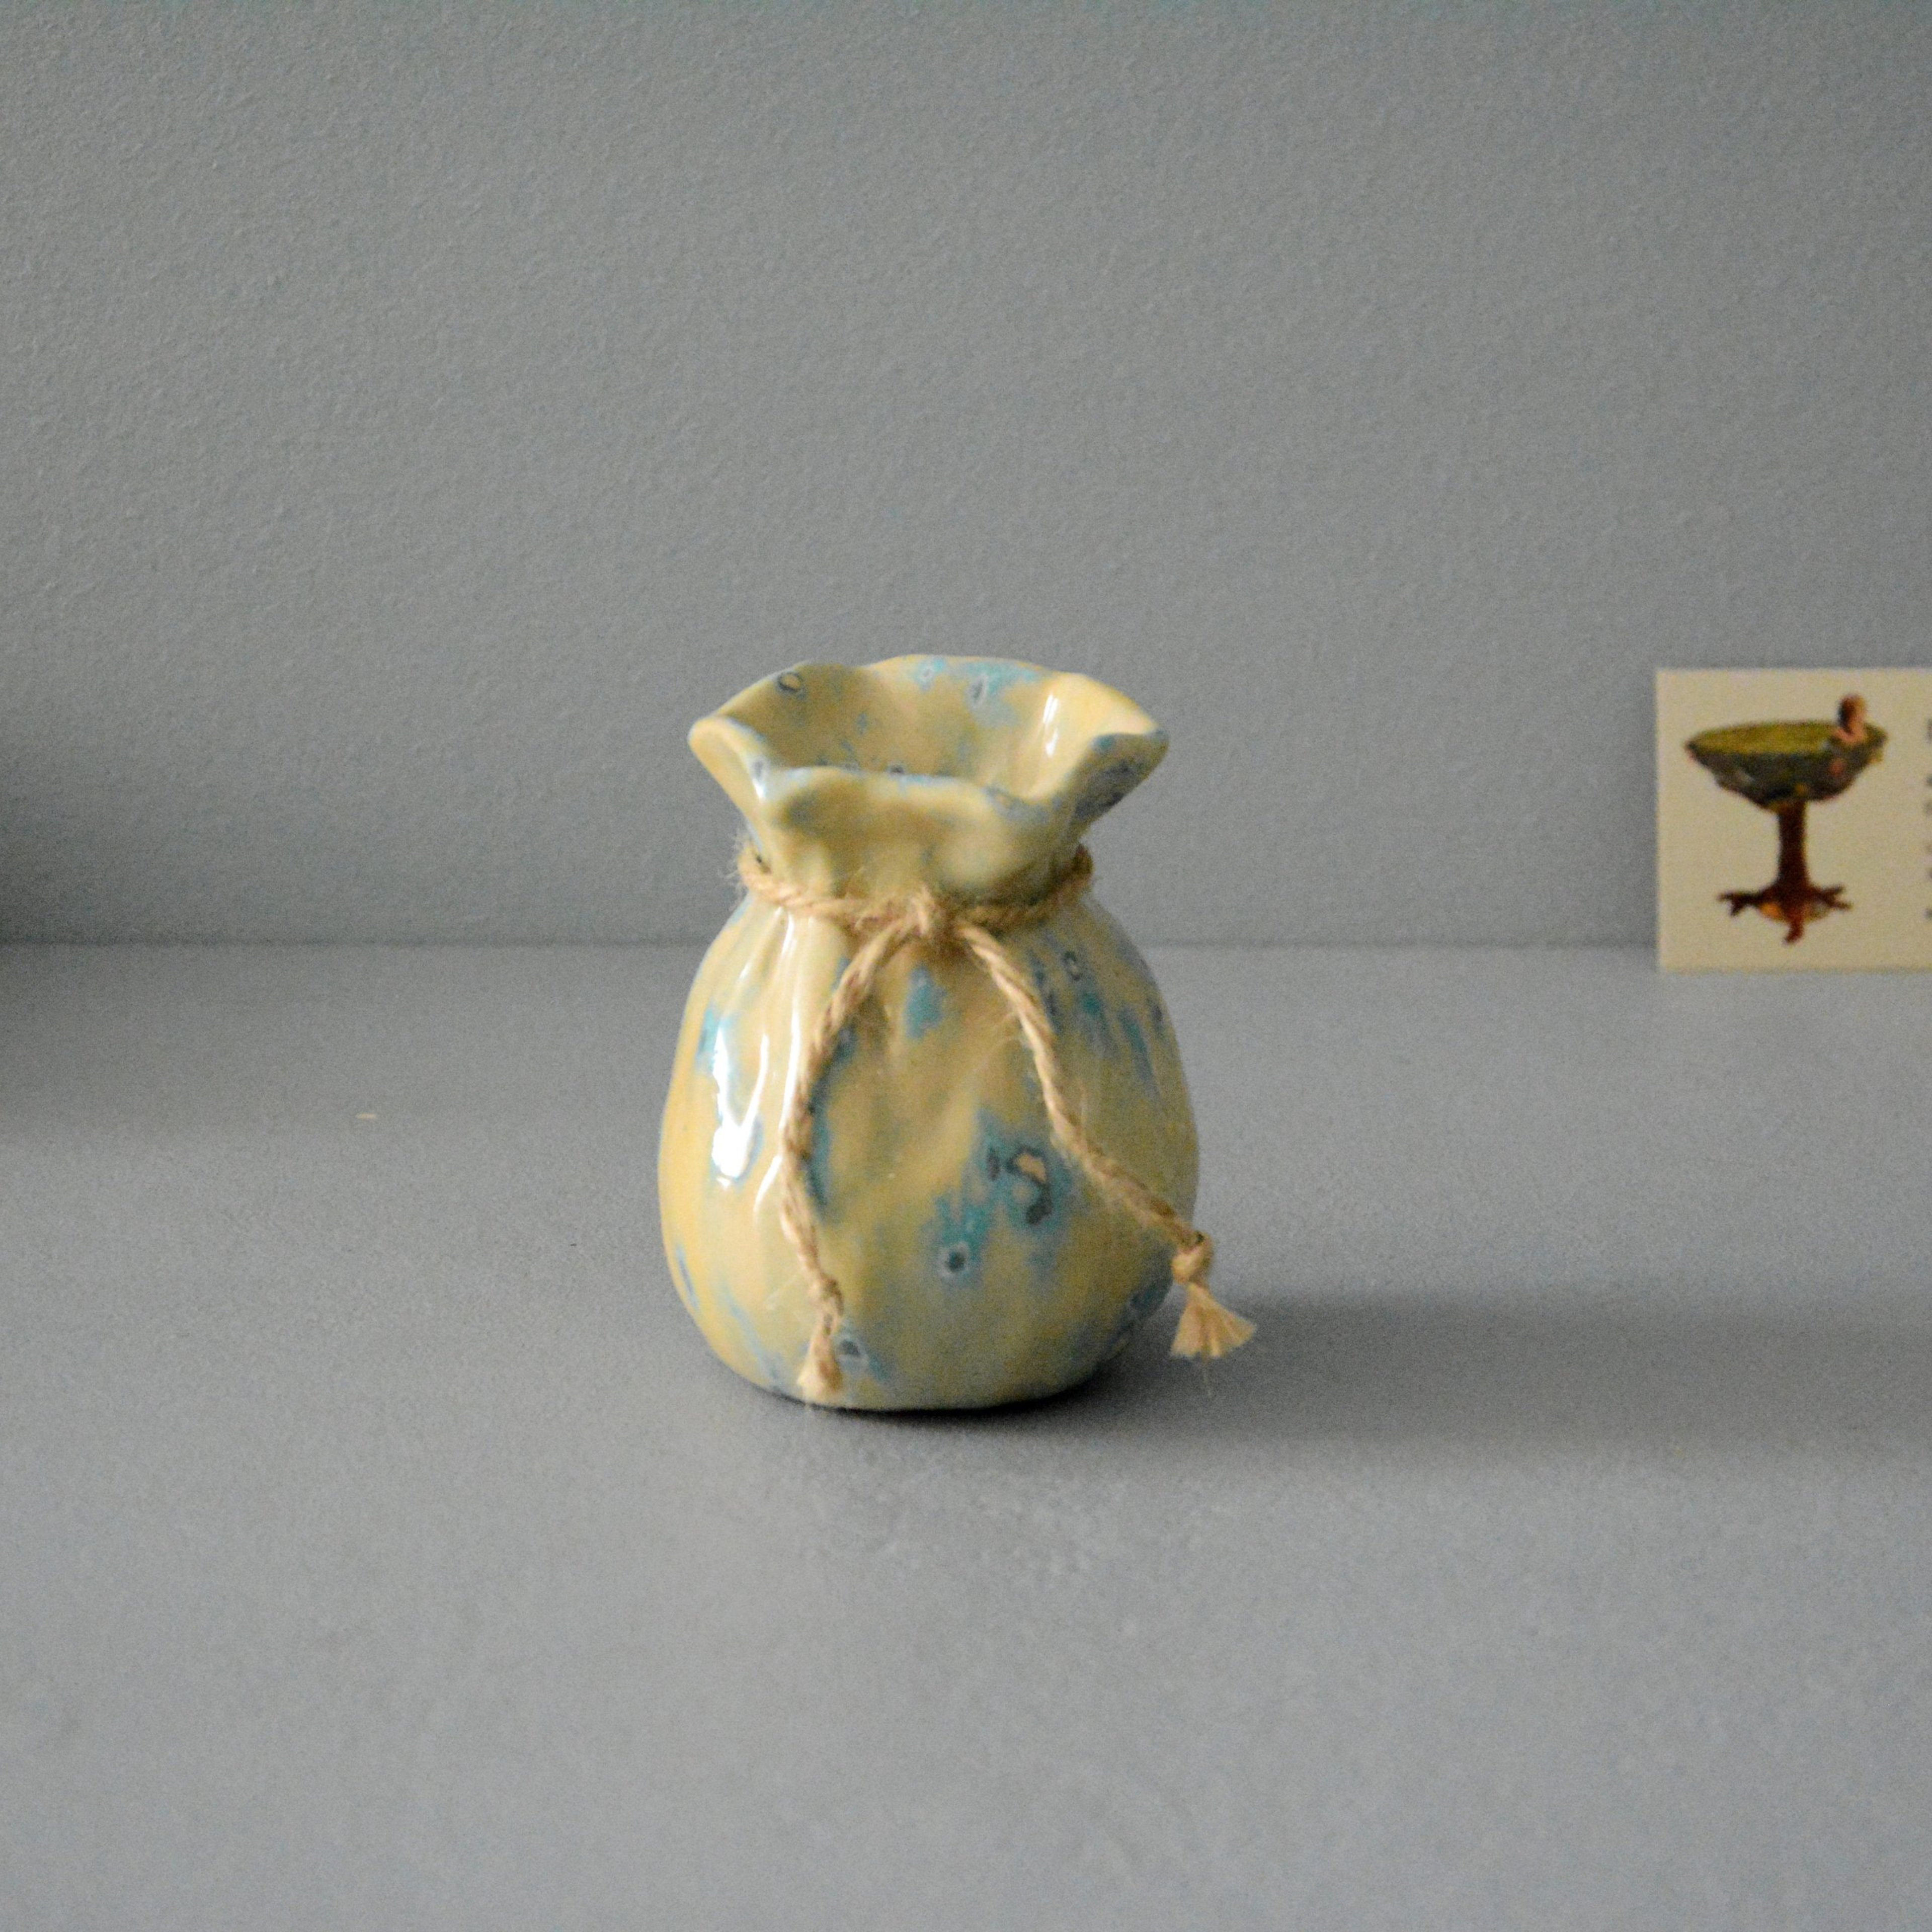 Small Vase or flowers «Beige Bagful», height - 9 cm, color - beige. Photo 1407-3840-3840.